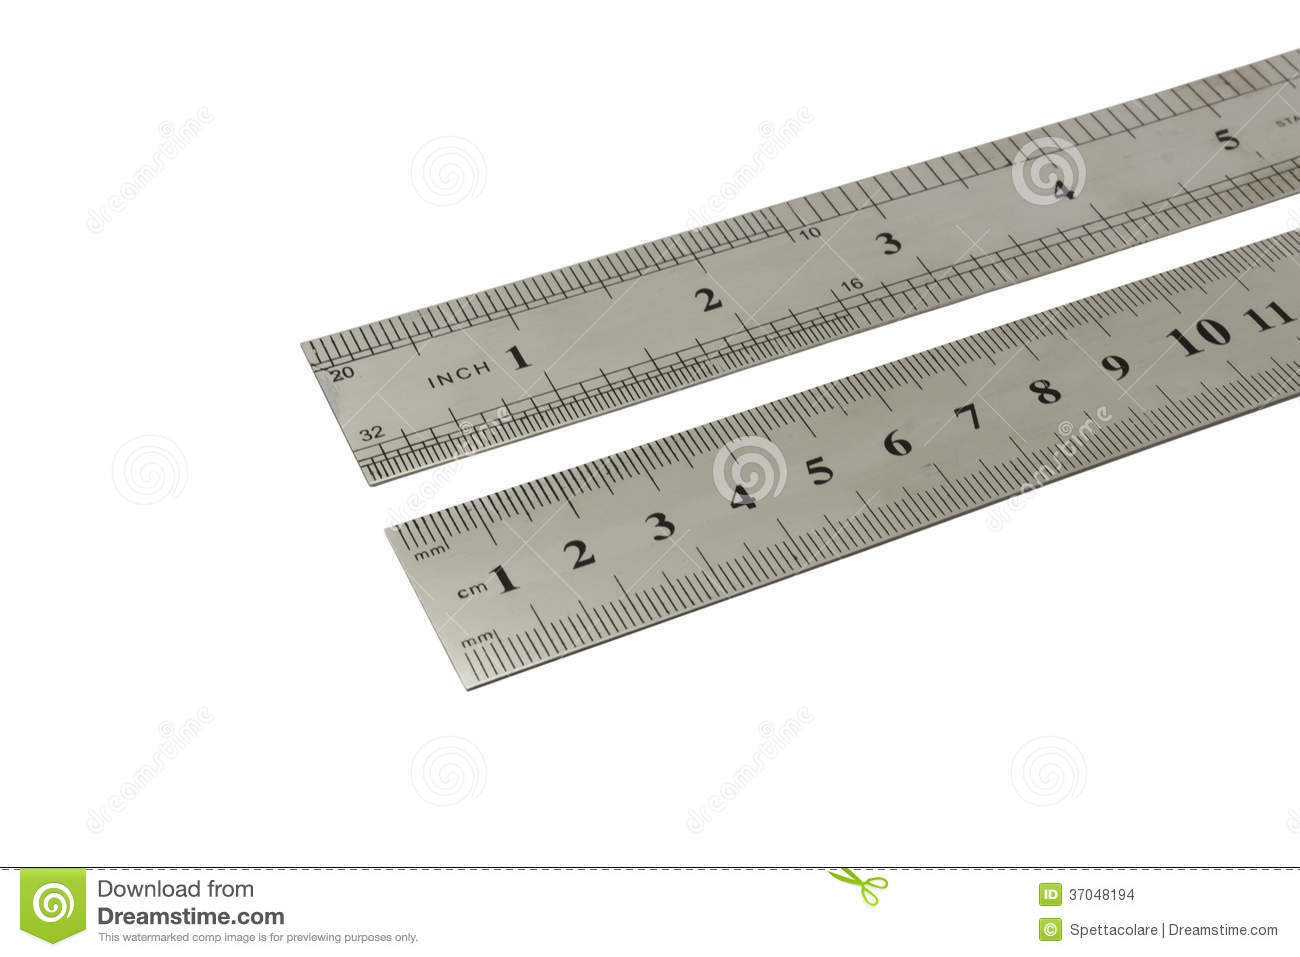 Inches And Centimeters Metal Ruler Stock Photo - Image of